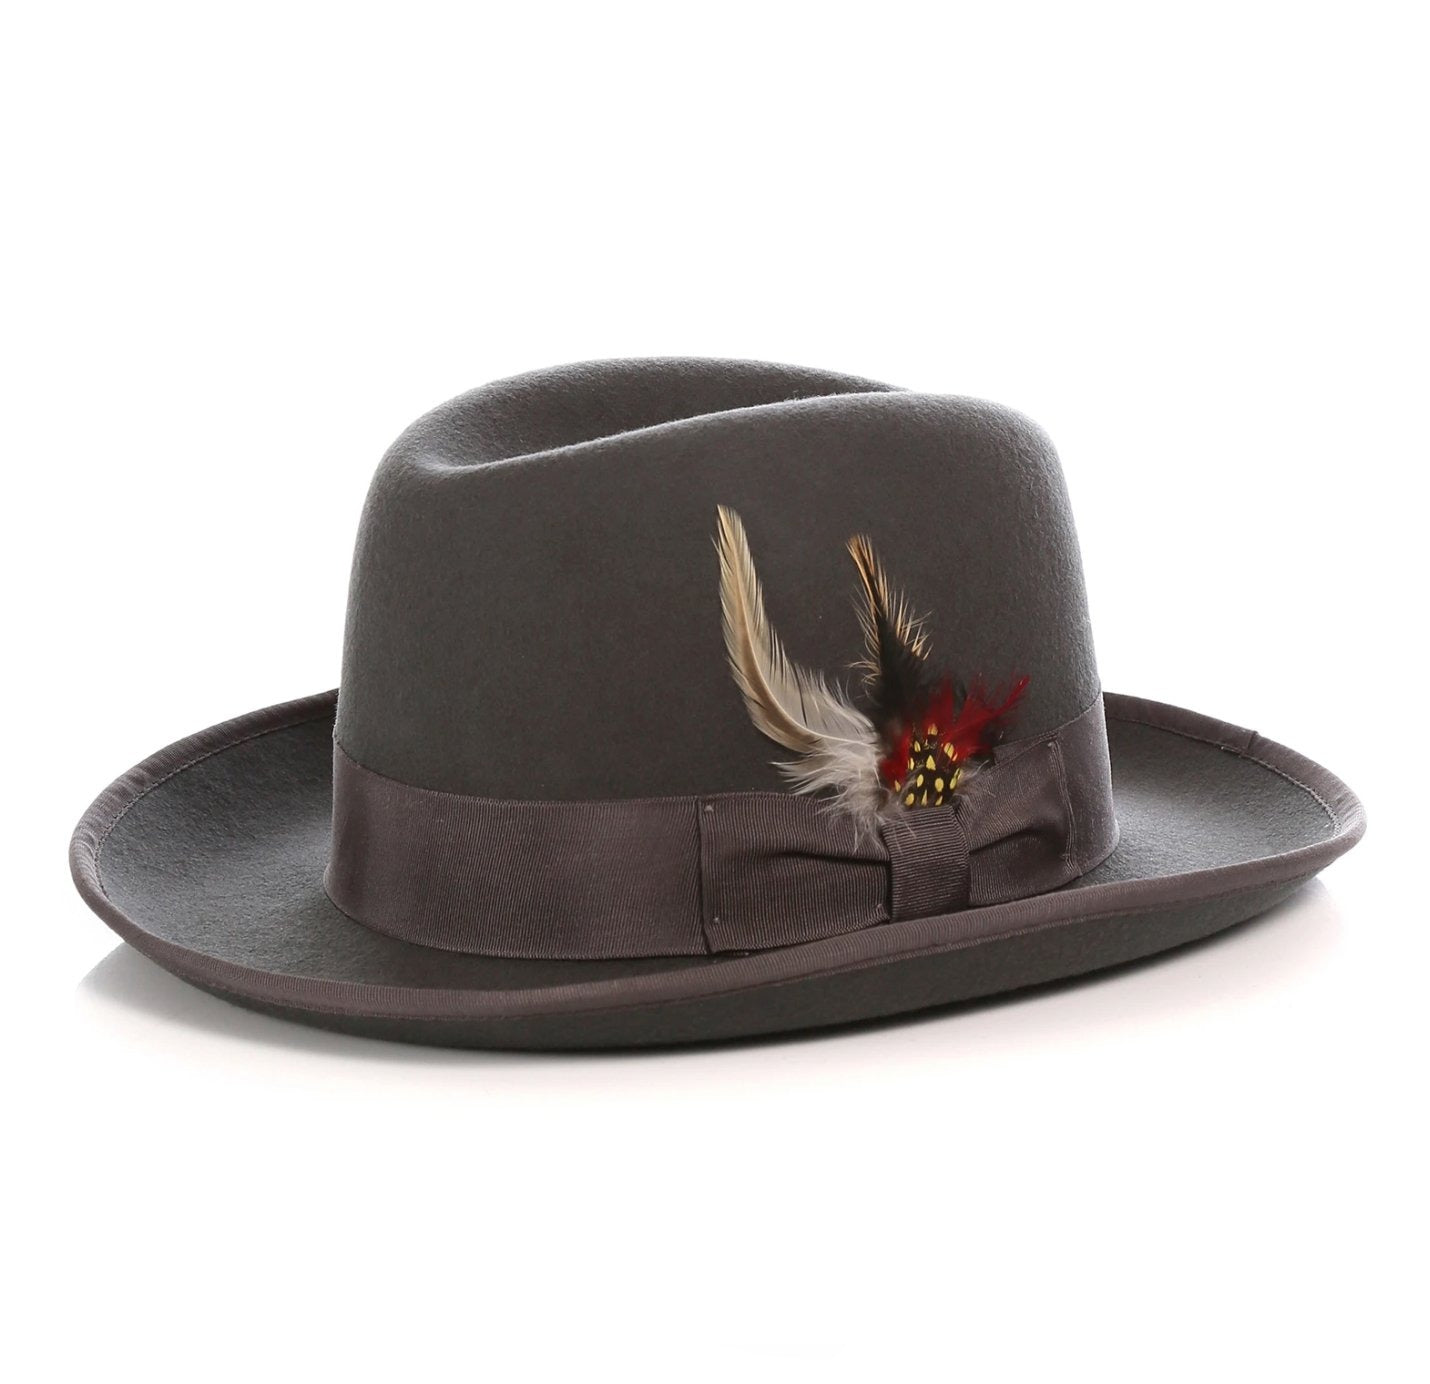 Mens Gangster Godfather Hat in Charcoal